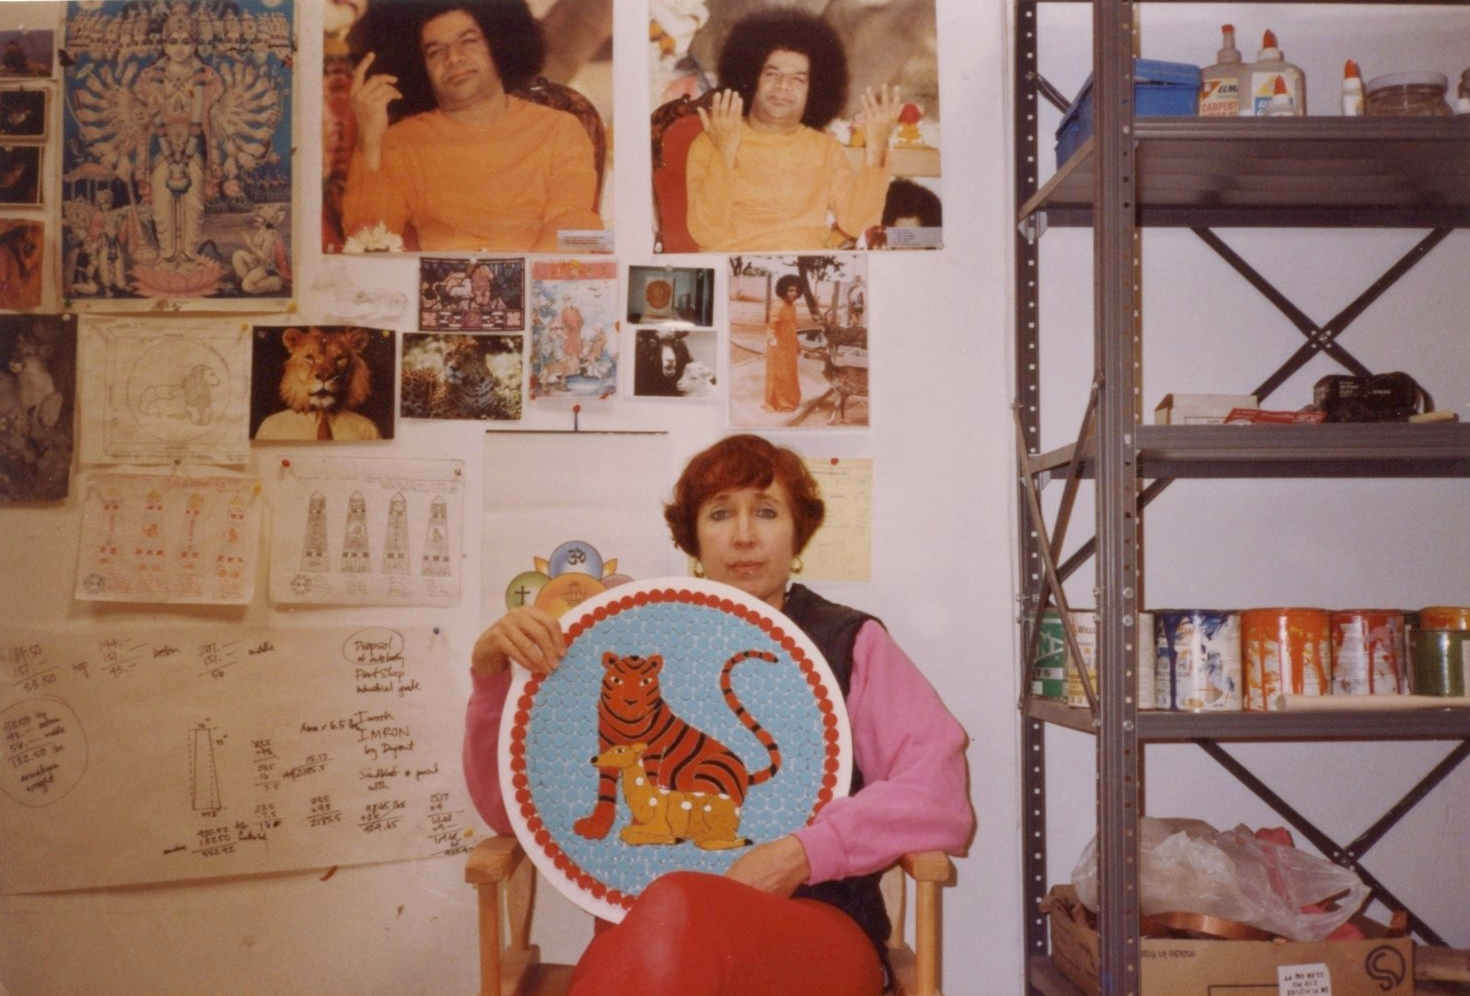 above: Joan Brown in her studio (photographs of Sathya Sai Baba hanging in the background), 1990. © The Joan Brown Estate. Photograph courtesy of The Bancroft Library, University of California, Berkeley.